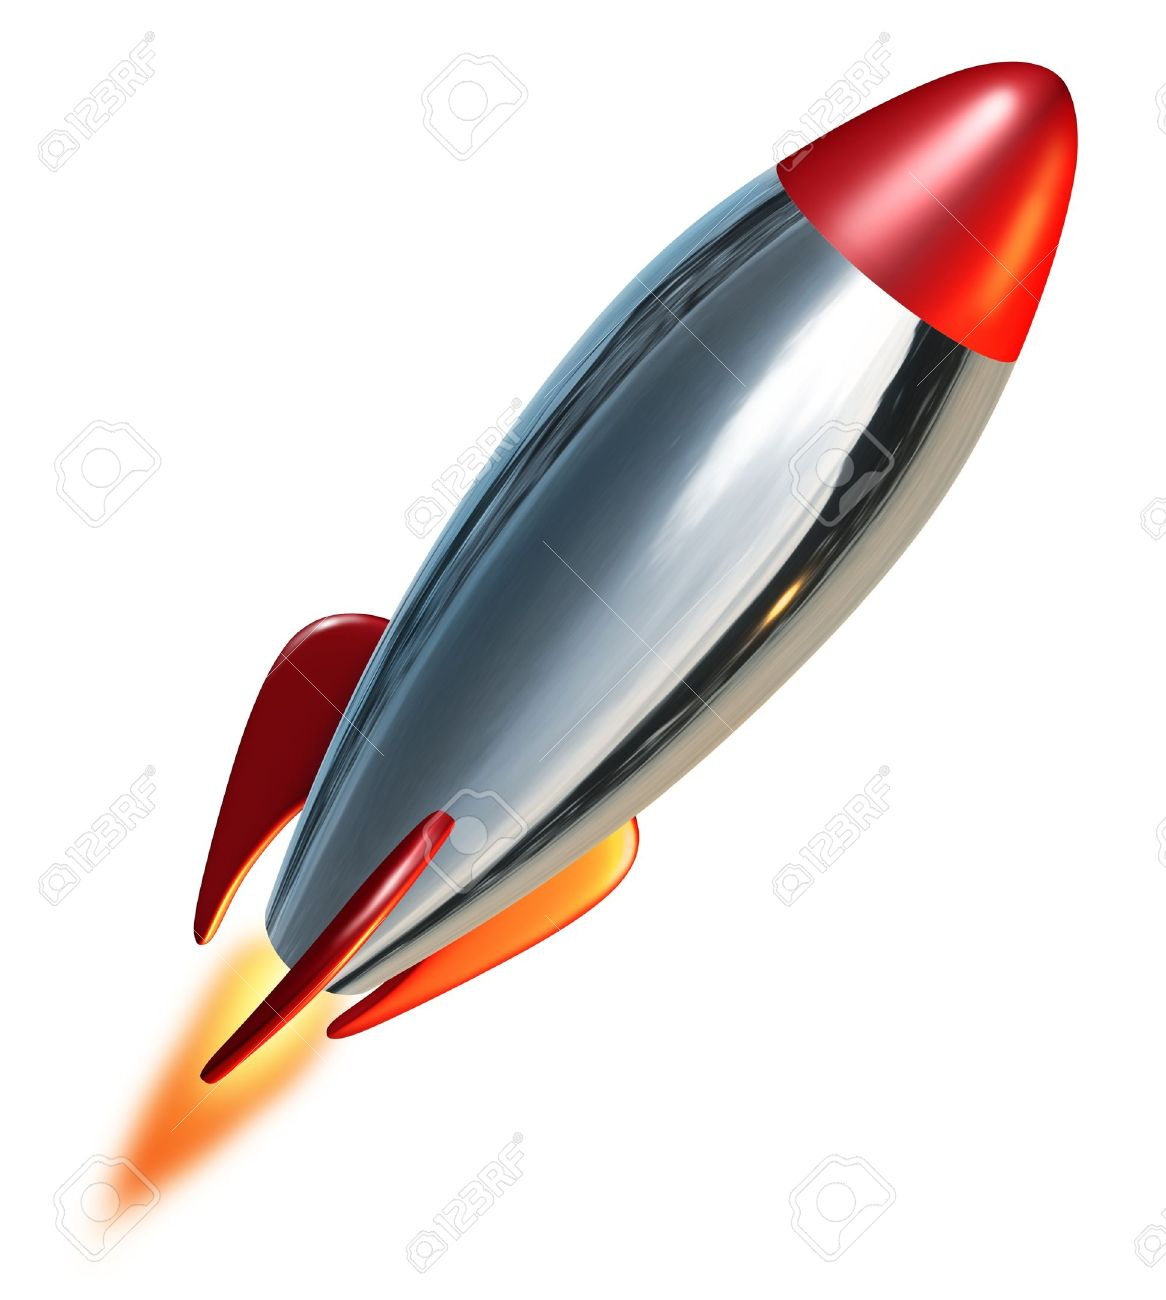 Rocket launch blast off representing a symbol of exploration and power from a metal missile spacecraft thrusting upwards into space with a combustion flame. Stock Photo - 10576935